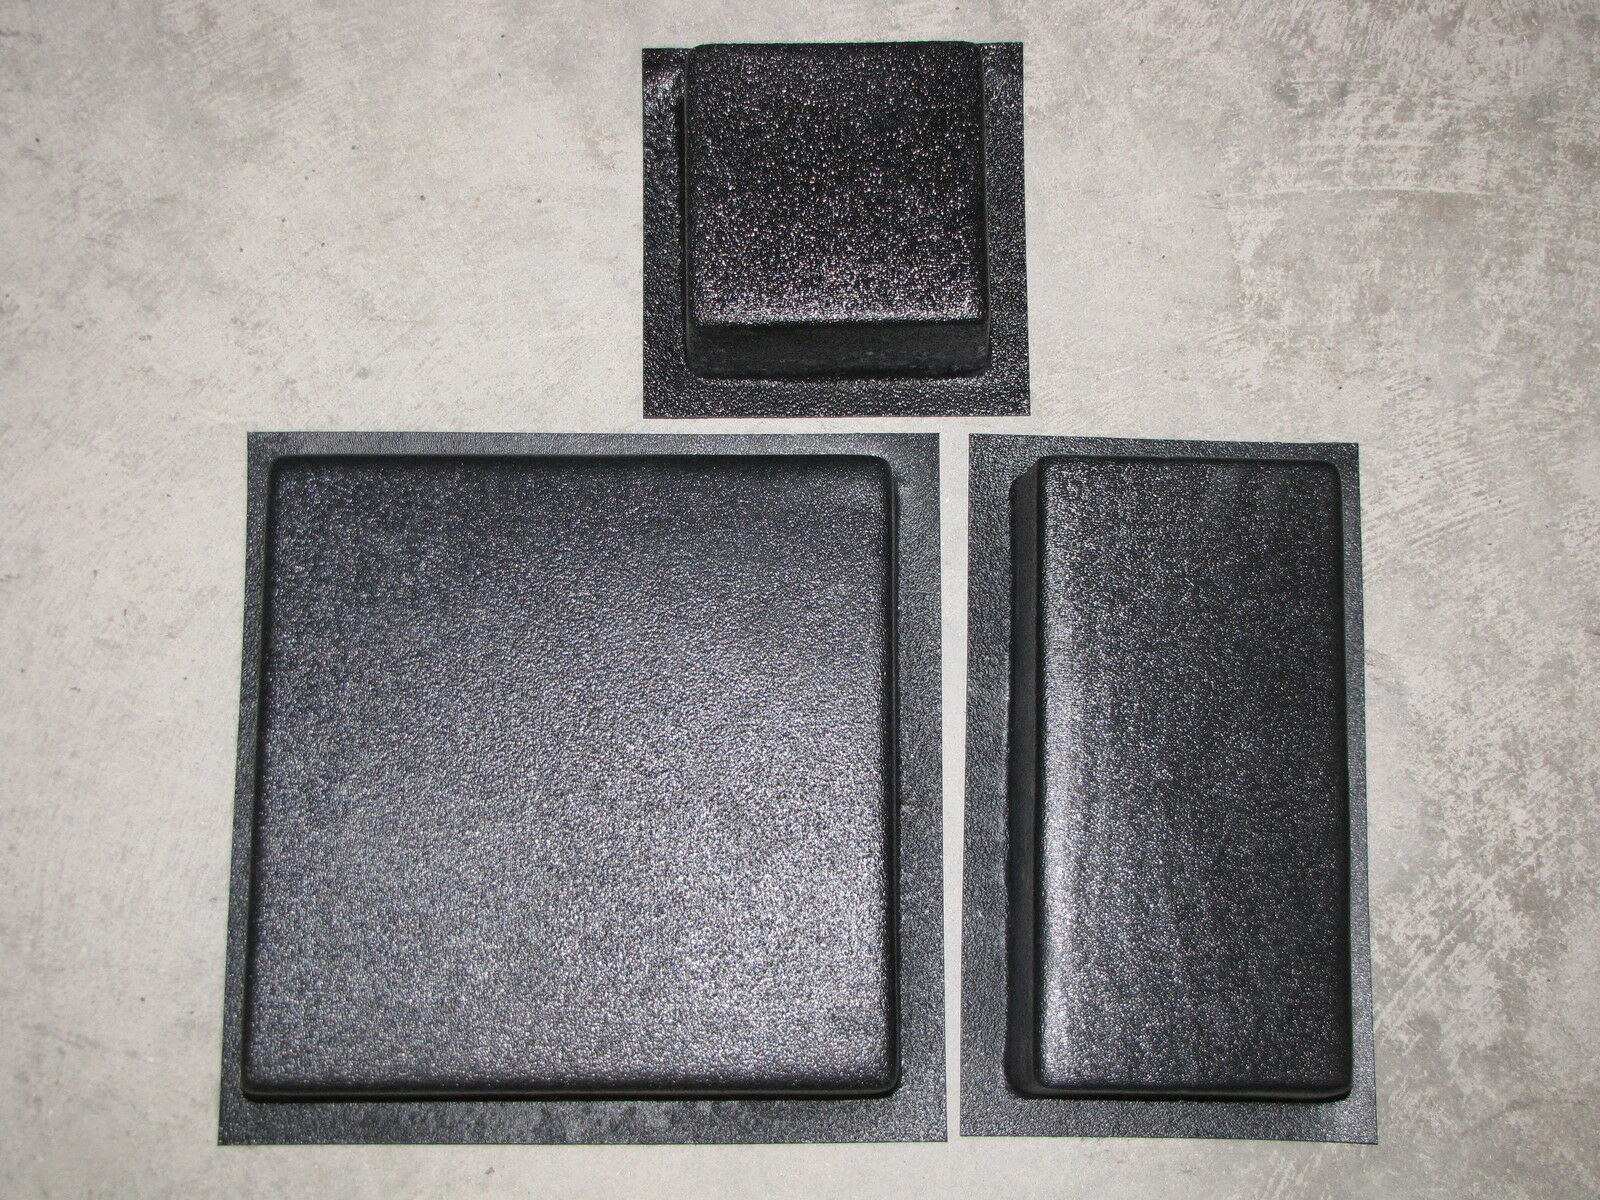 DIY SUPPLY KIT w13 DRIVEWAY PAVER MOLDS #3006K = 100s OPUS ROMANO PATTERN PAVERS